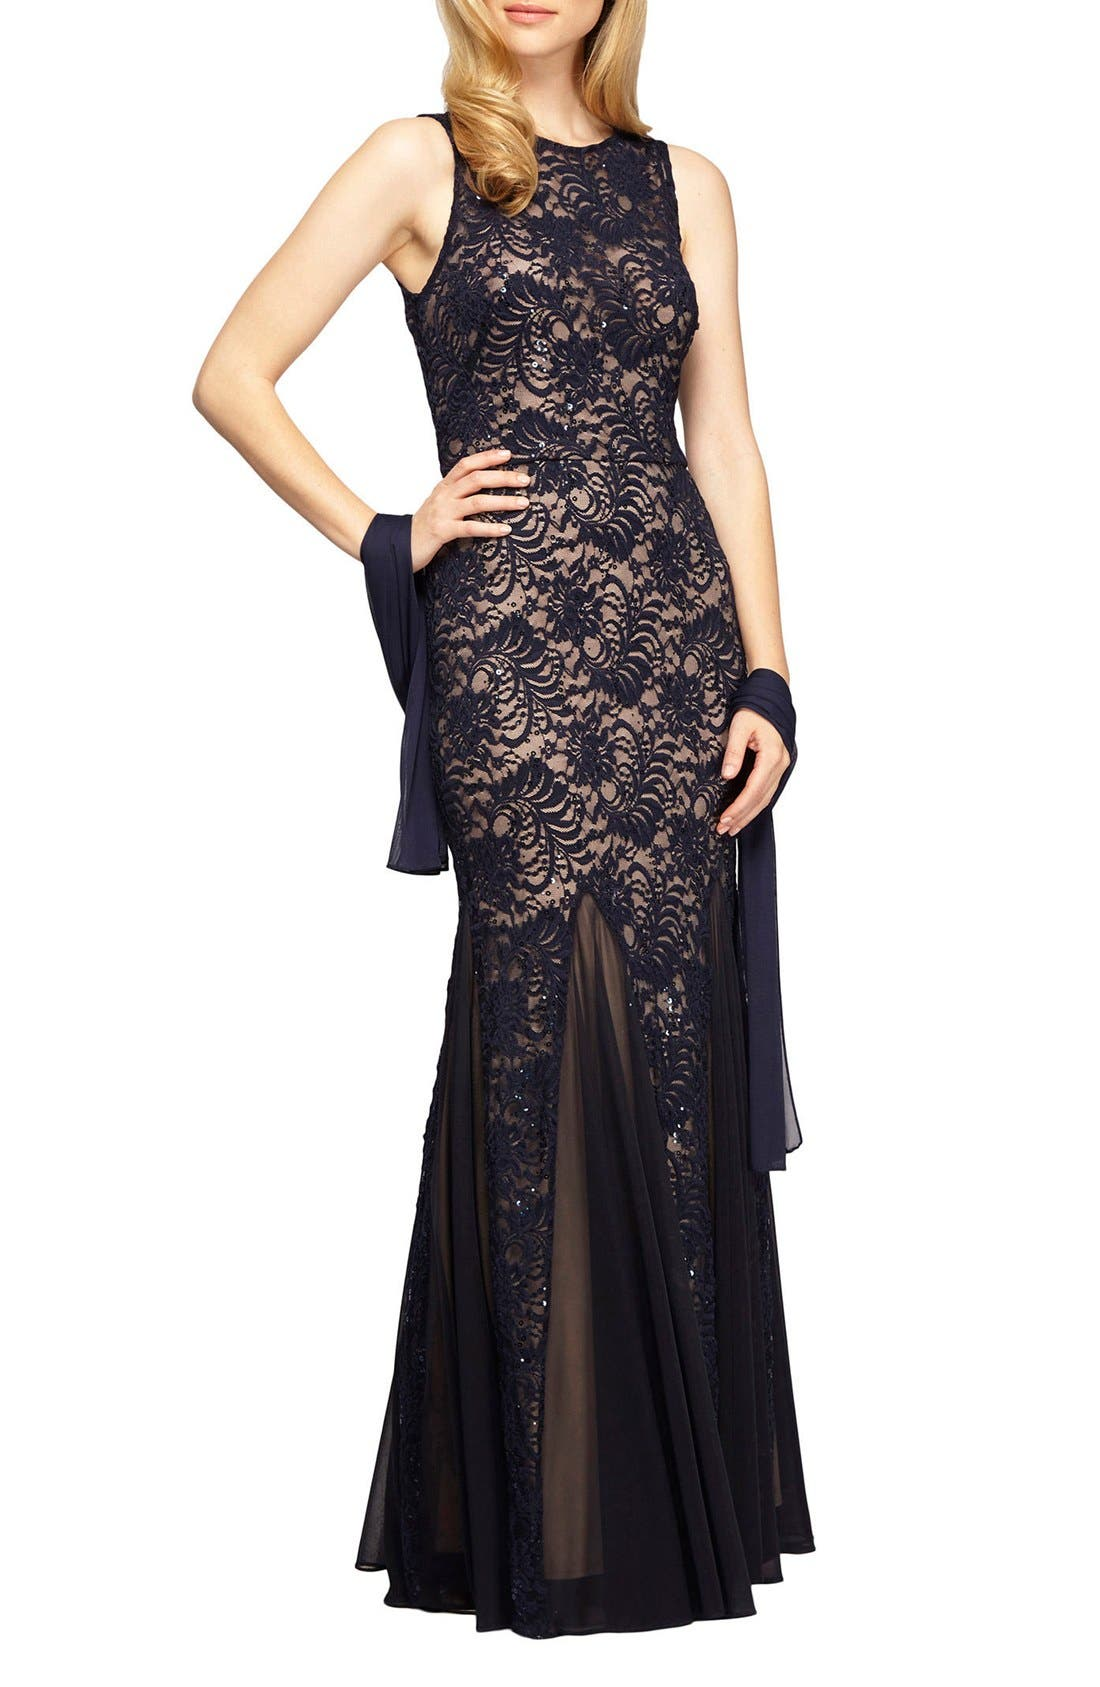 Alternate Image 1 Selected - Alex Evenings Sequin Lace Mermaid Gown & Shawl (Regular & Petite)